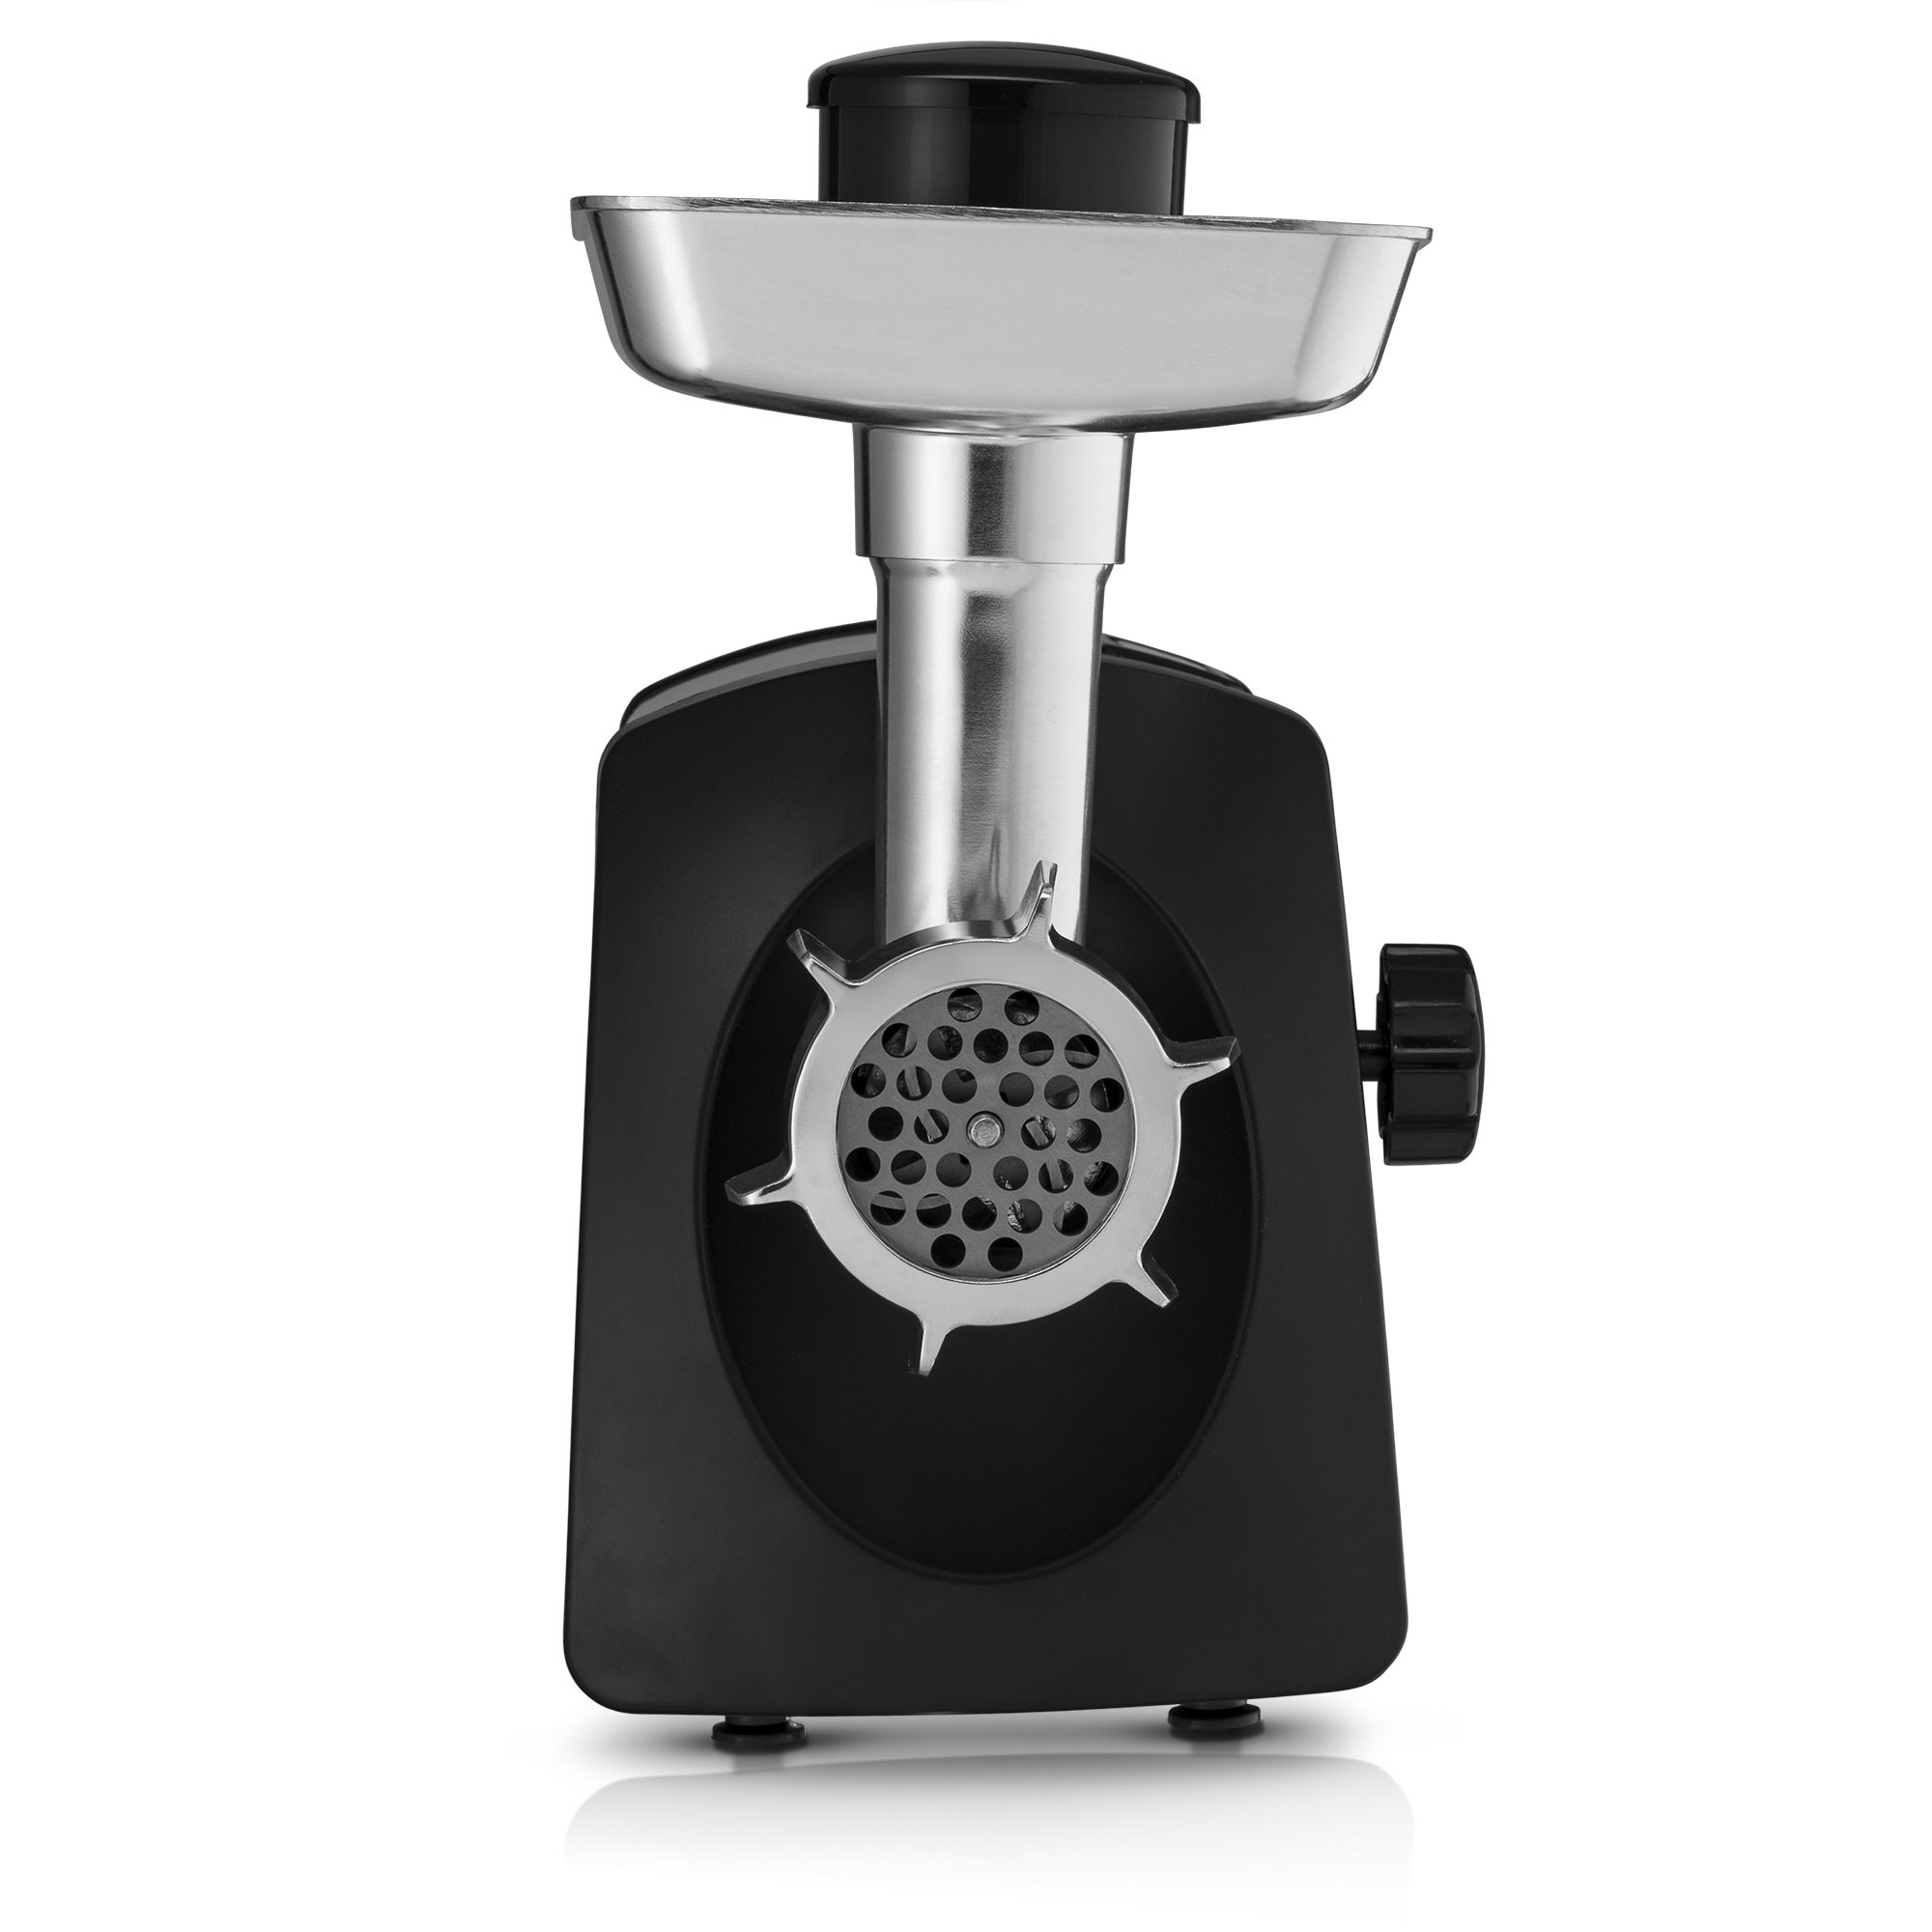 Gourmia GMG7500 Prime Plus Stainless Steel Electric Meat Grinder Different Grinding Plates, Sausage Funnels And Kibbeh Attachment Recipe Book Included 800 Watts ETL Approved 2200 Watts Max. - 110V by Gourmia (Image #3)